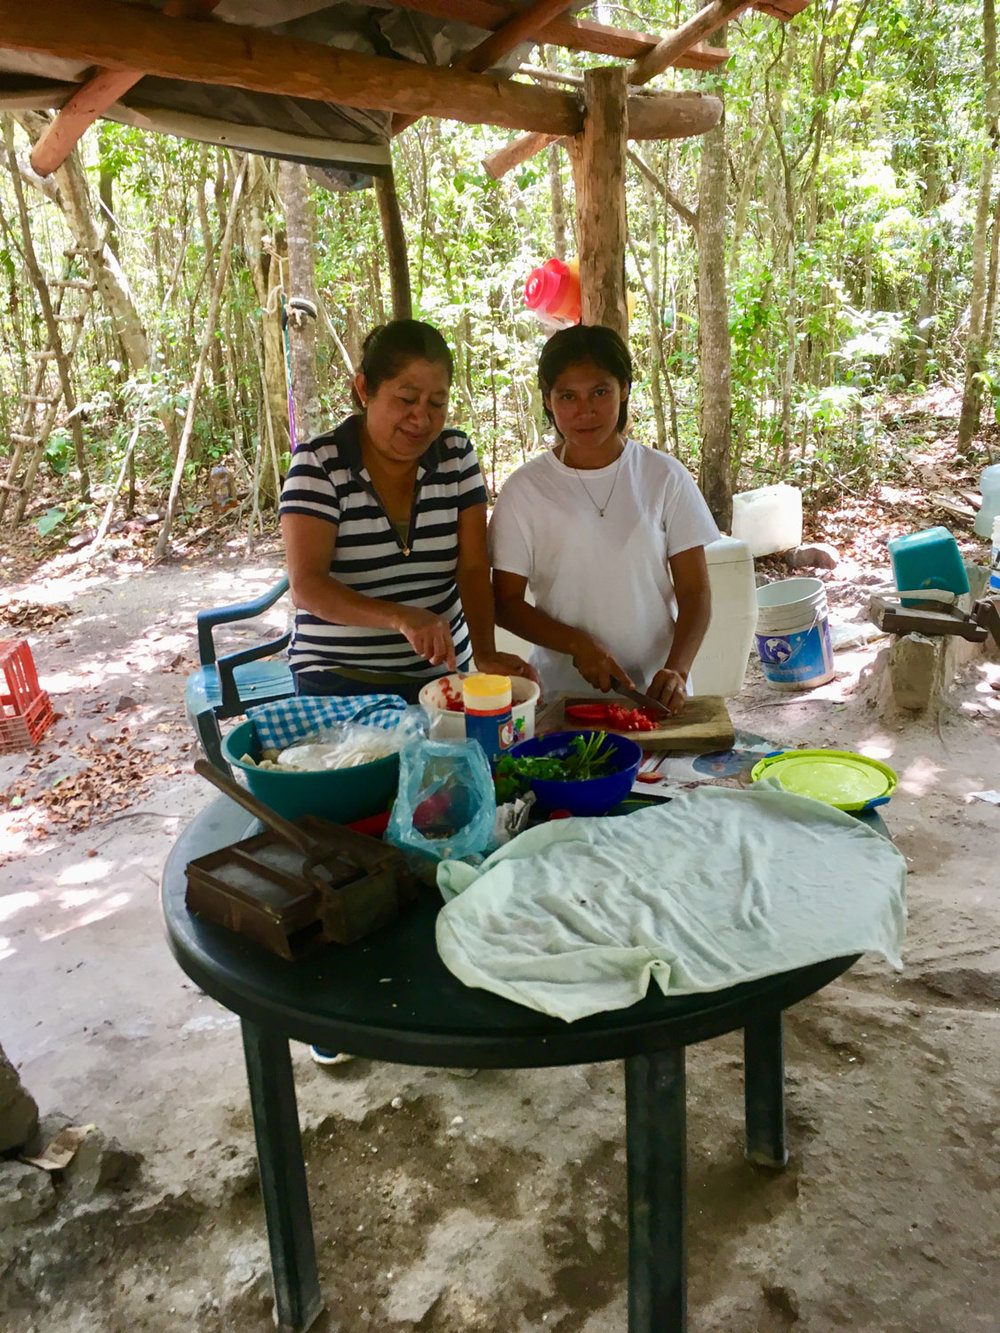 The local Maya women prepare the food in the rustic 'kitchen'.